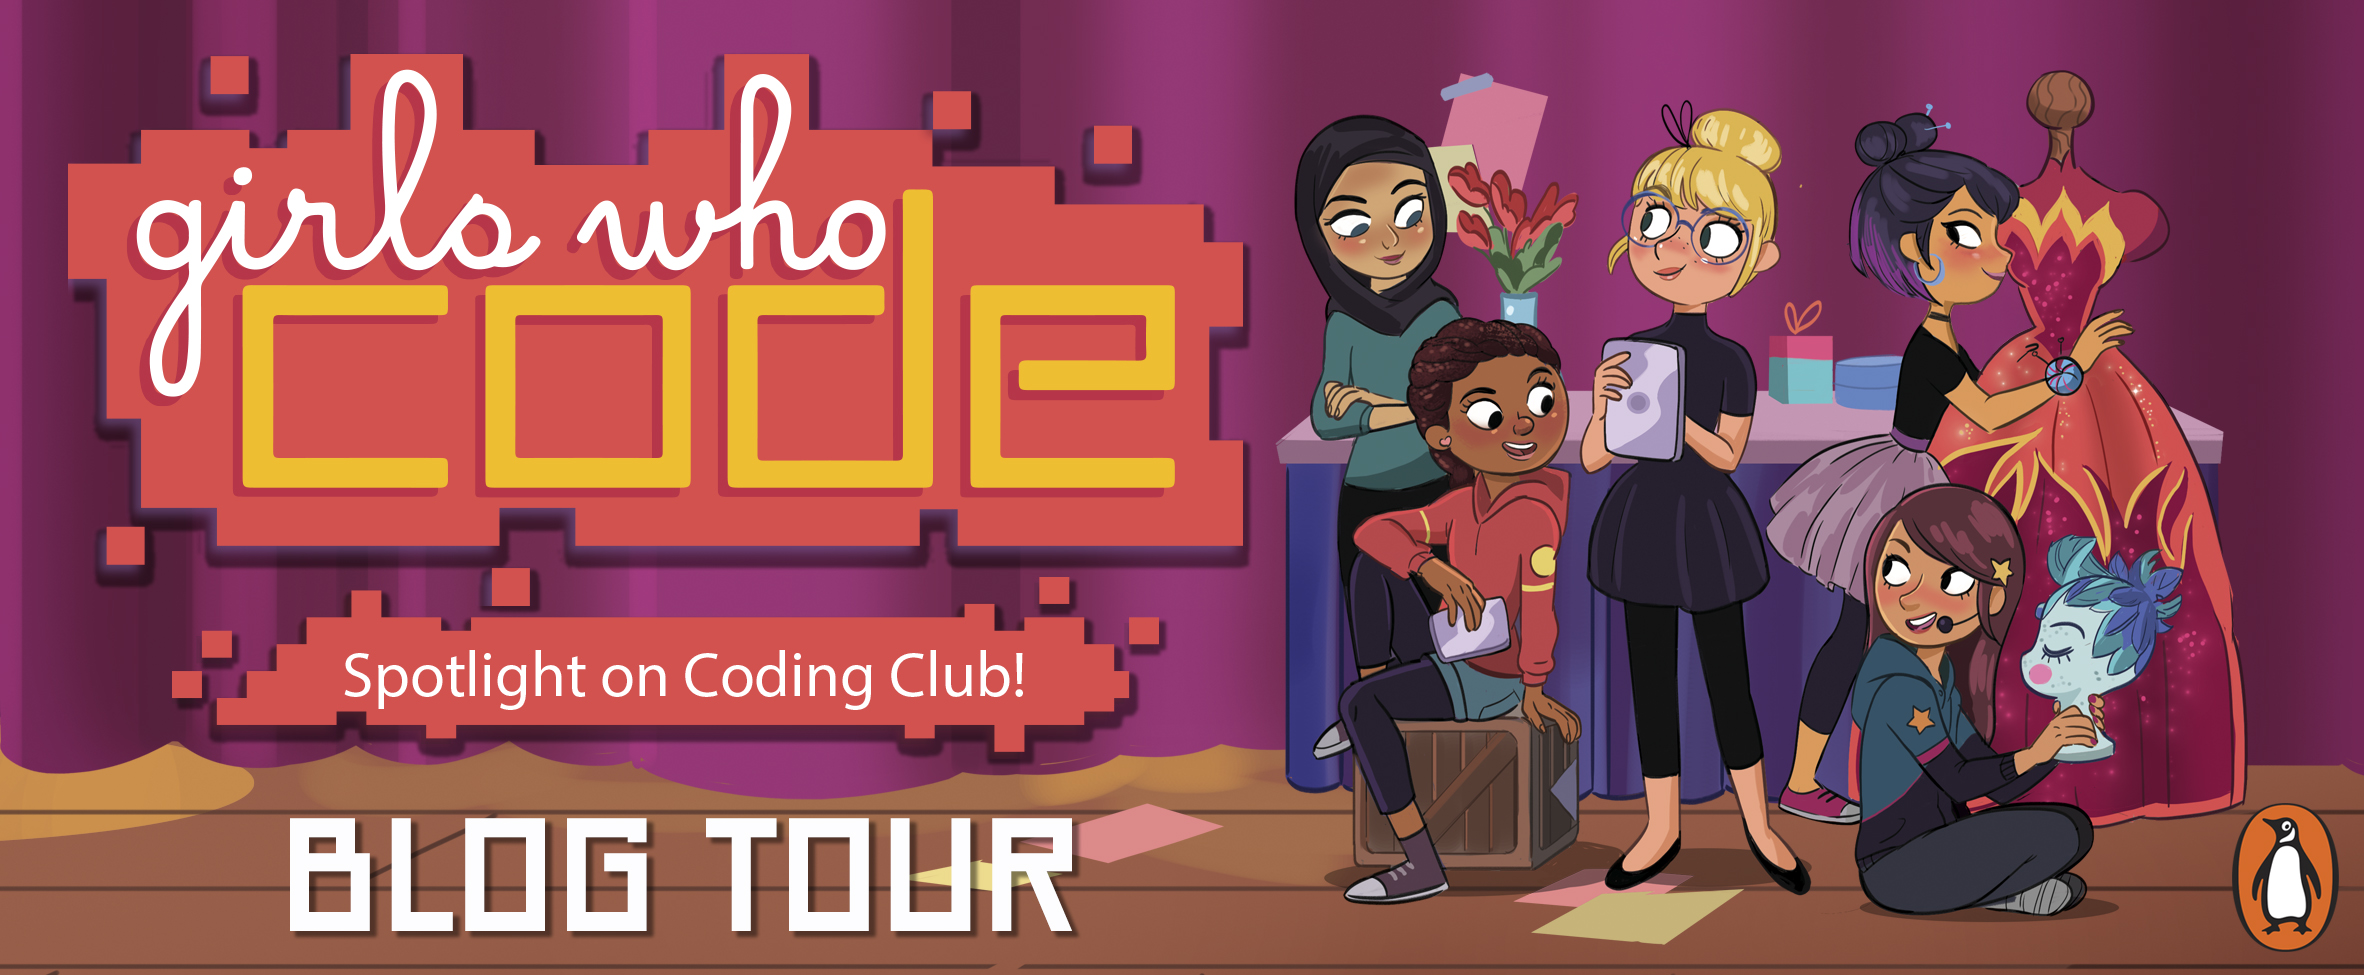 GIRLS WHO CODE: SPOTLIGHT ON CODING CLUB by: Michelle Schusterman